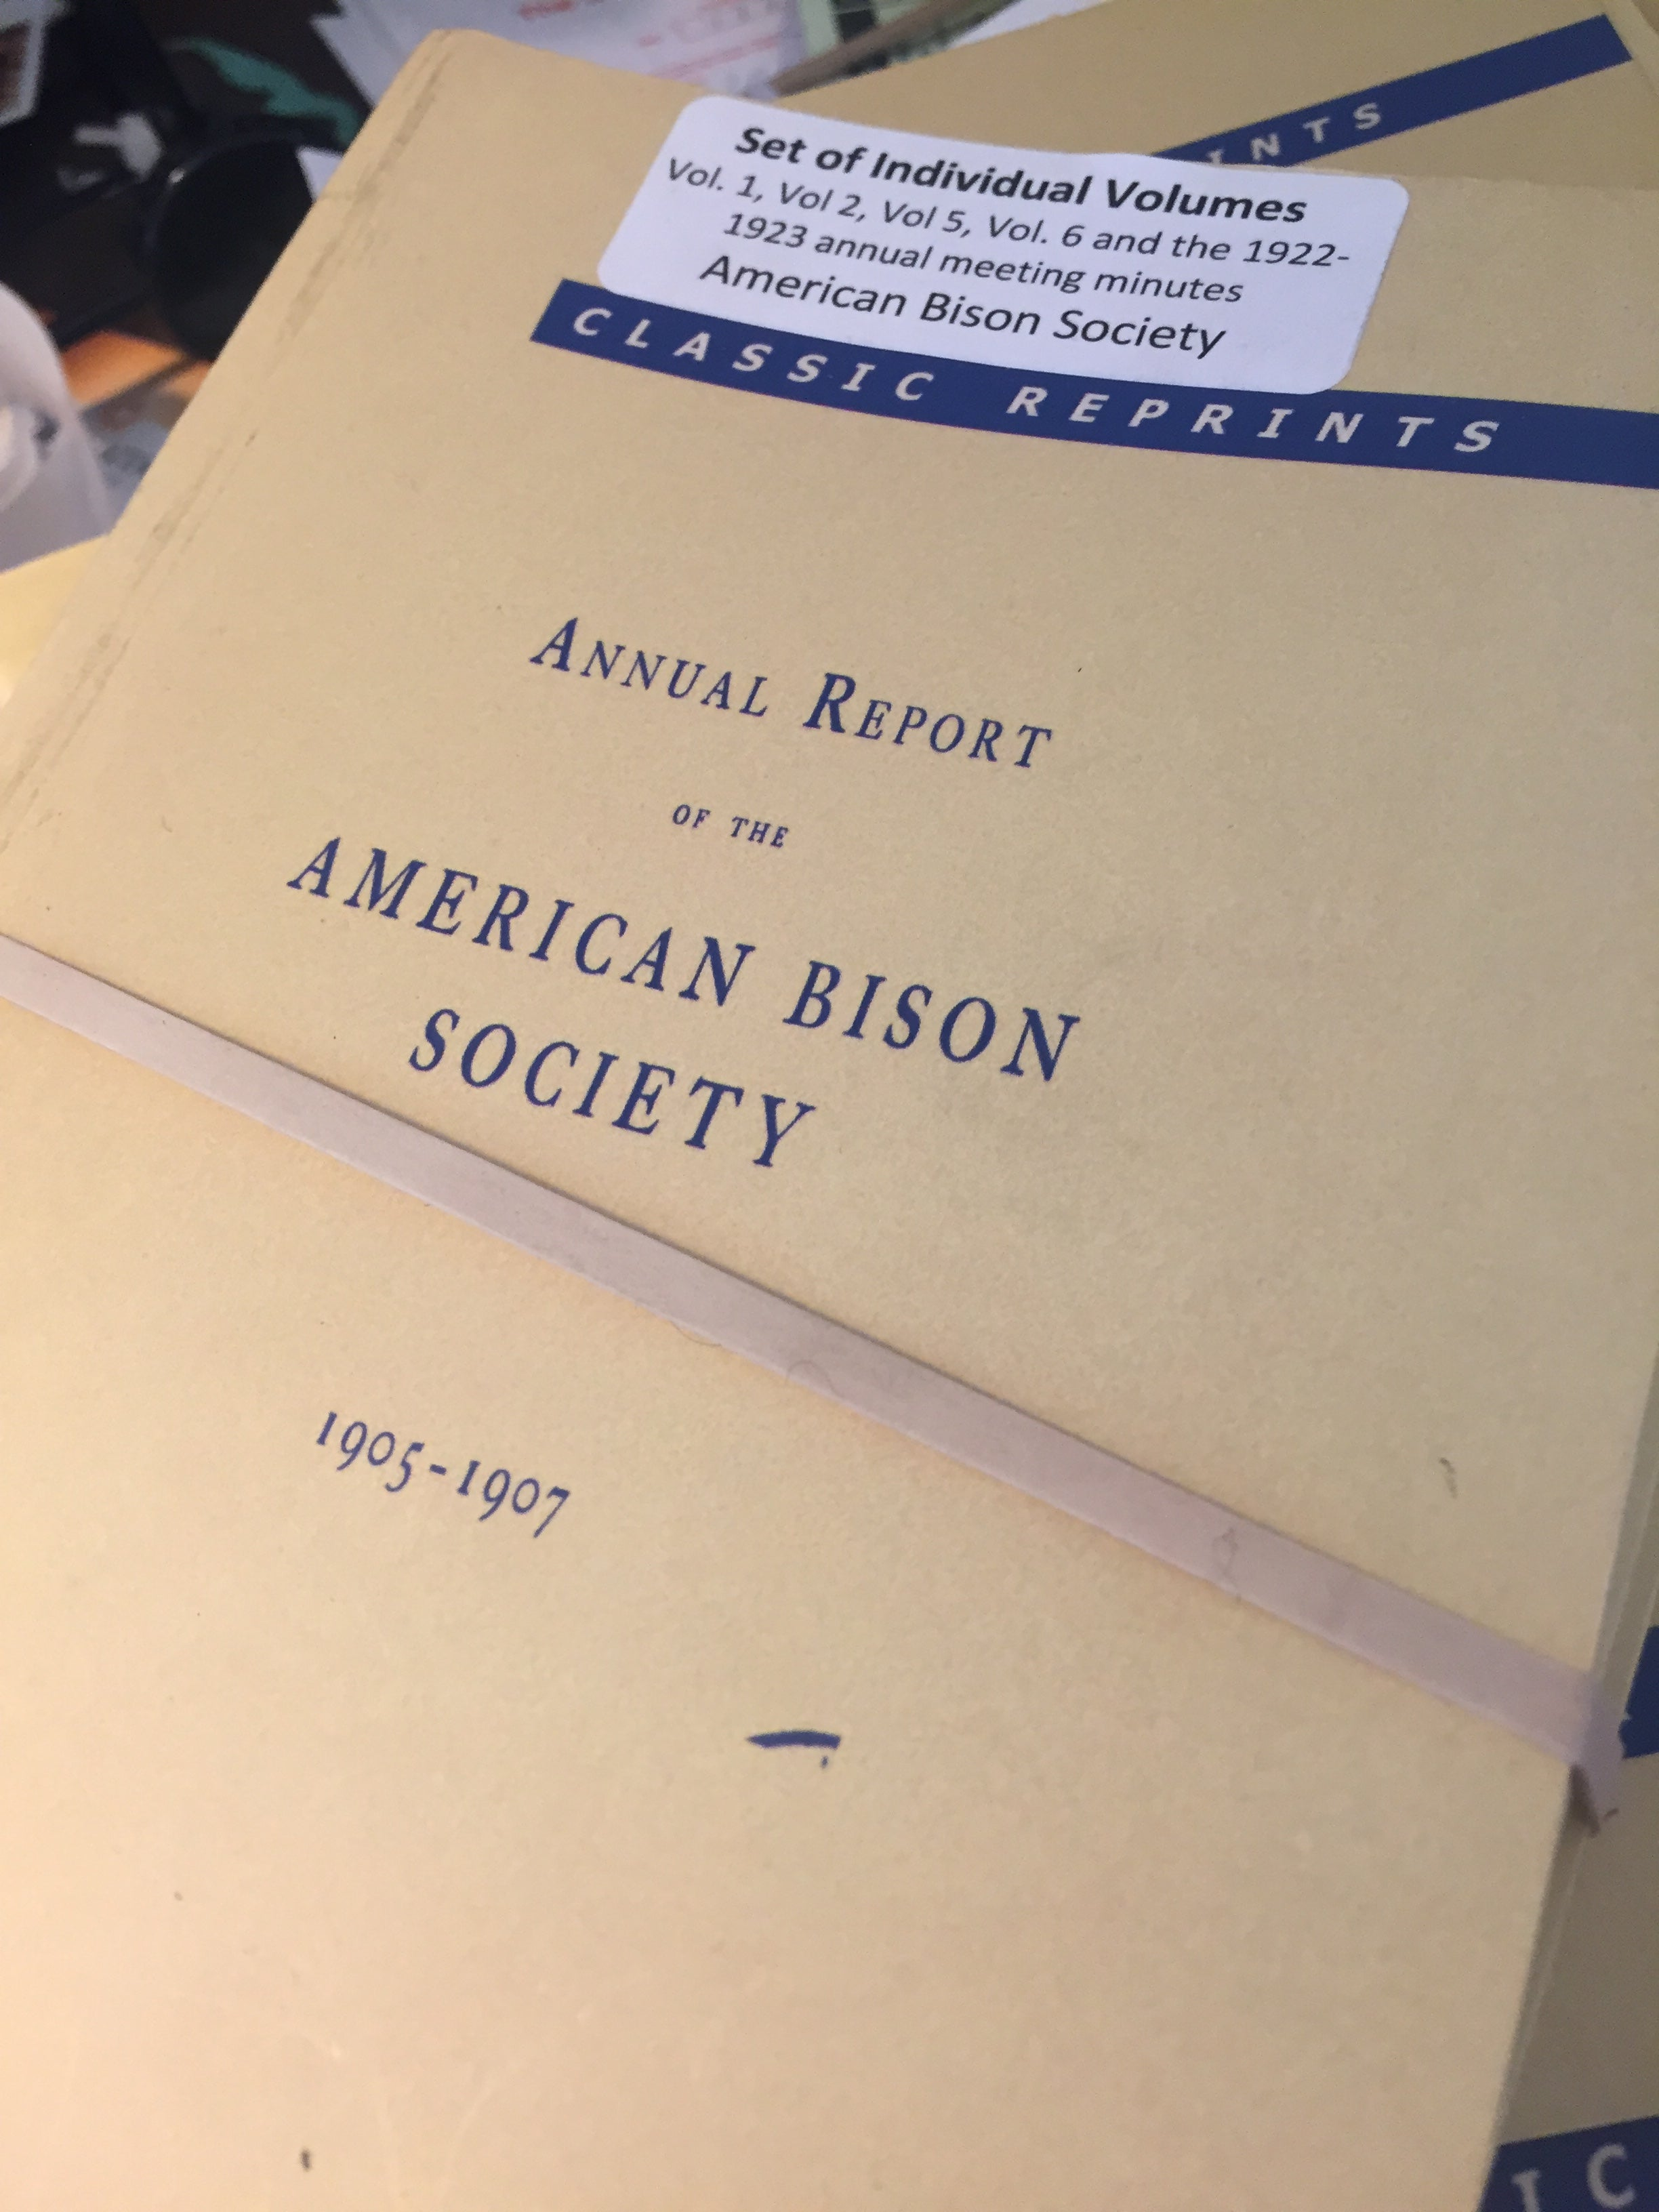 BOOKS - Annual Report of the American Bison Society - sets of individual volumes 1, 2, 5 and 1922-23